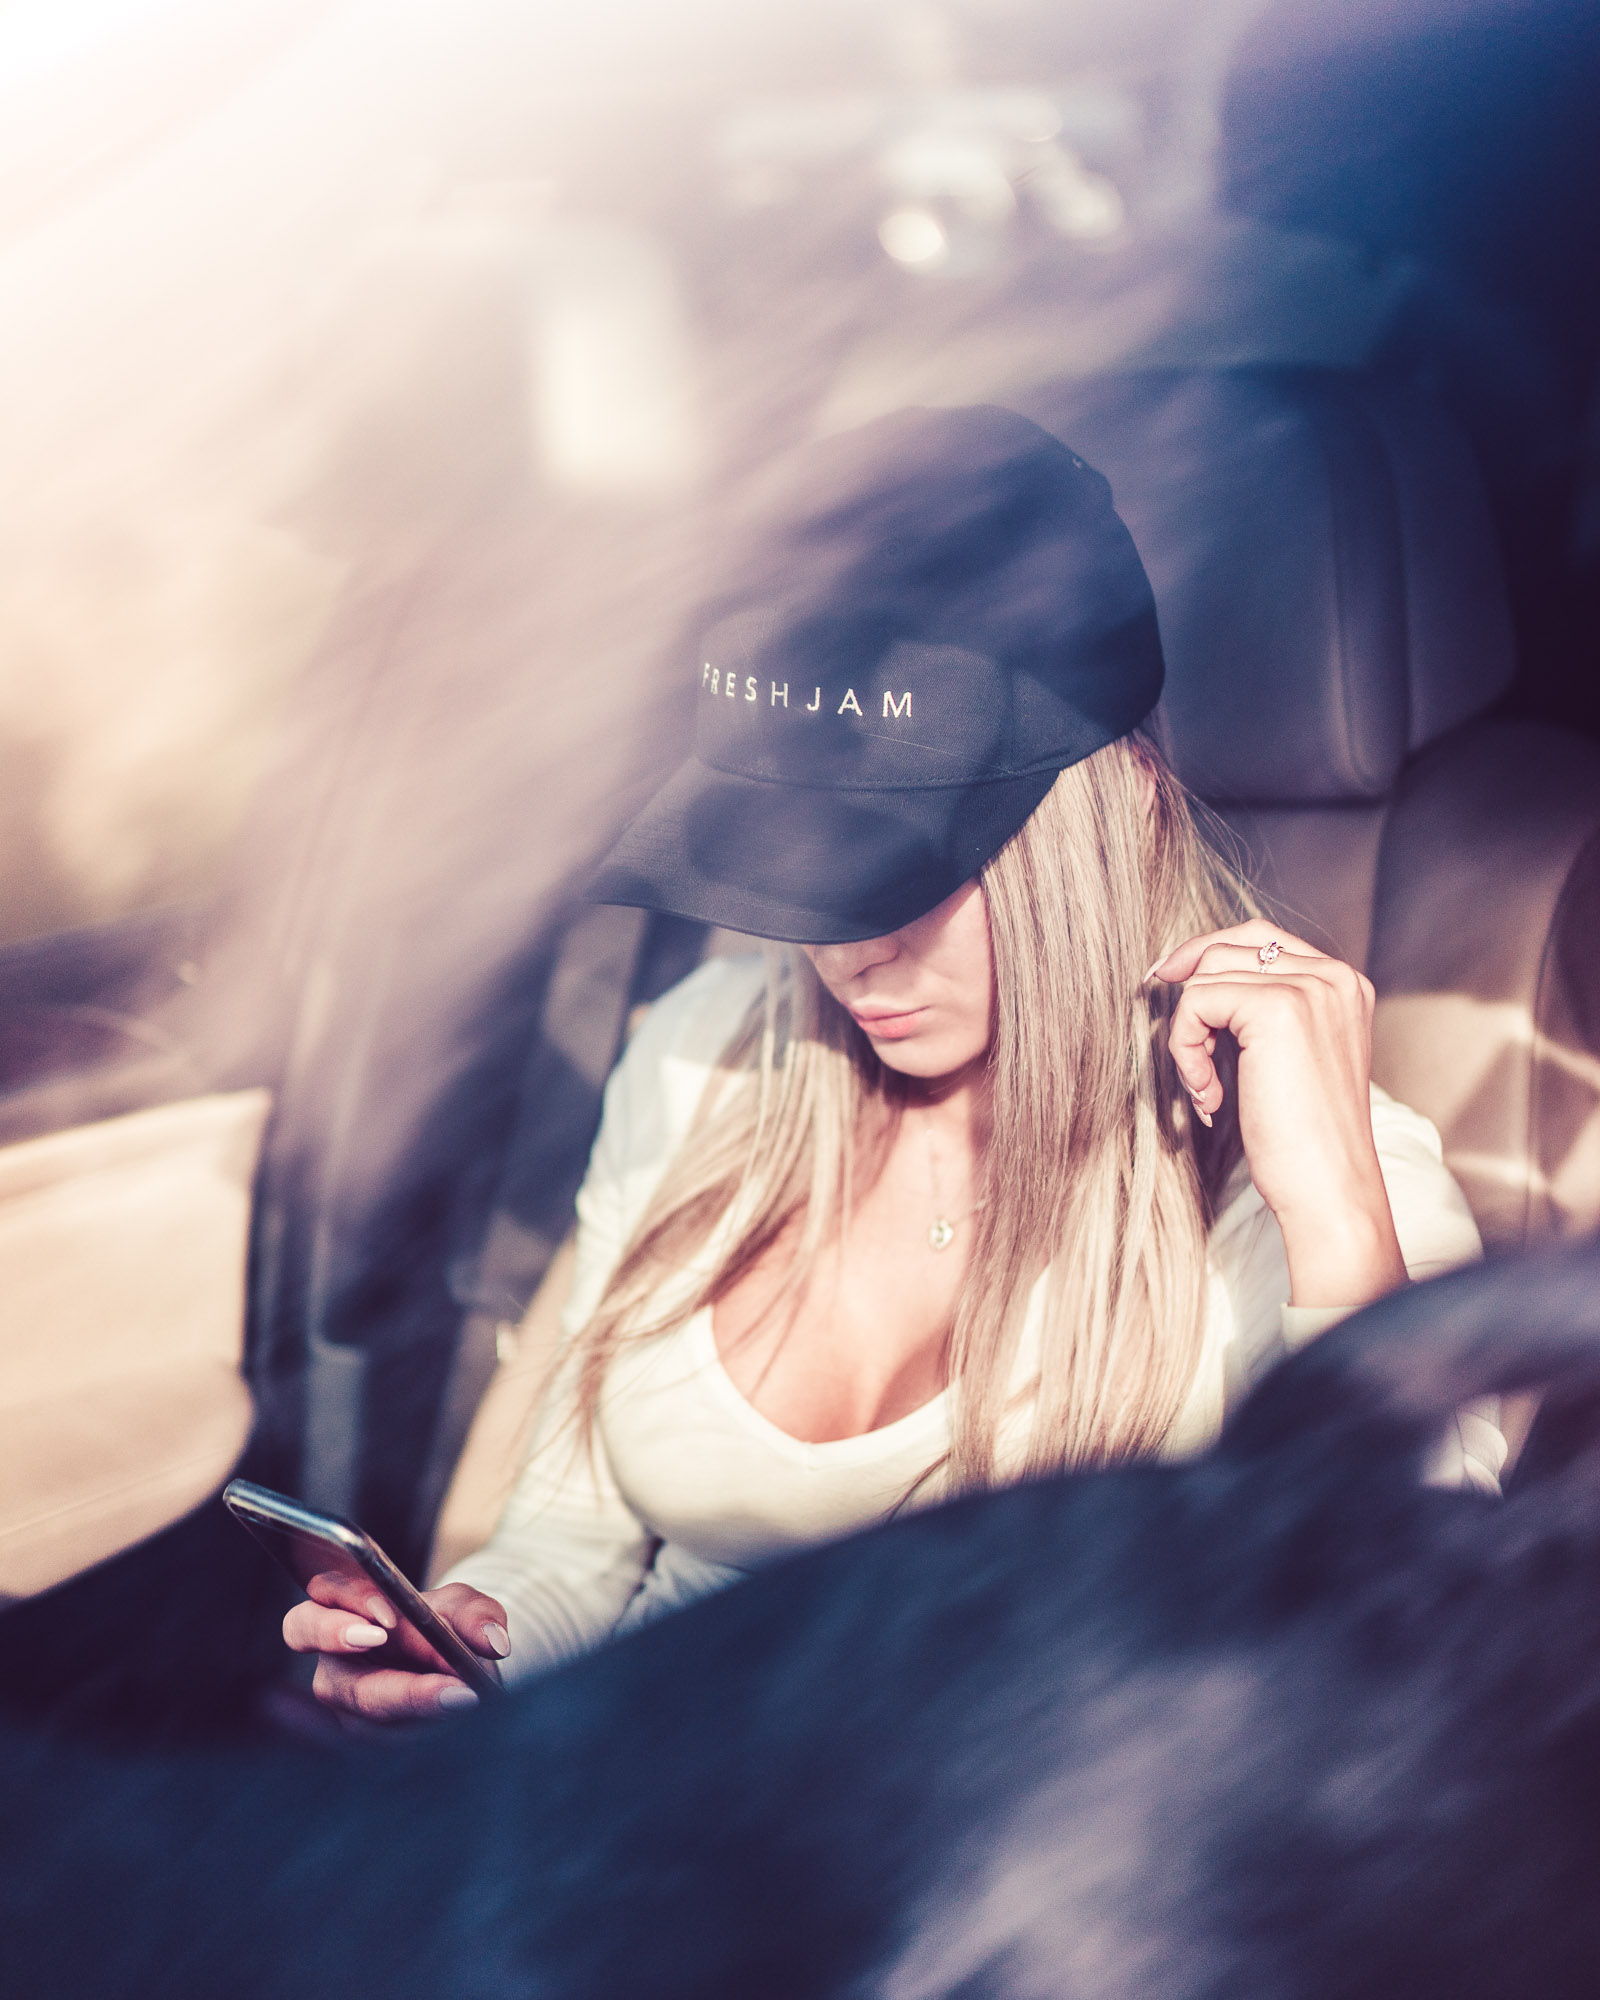 Snapback Minimal Sexy Blonde in Car